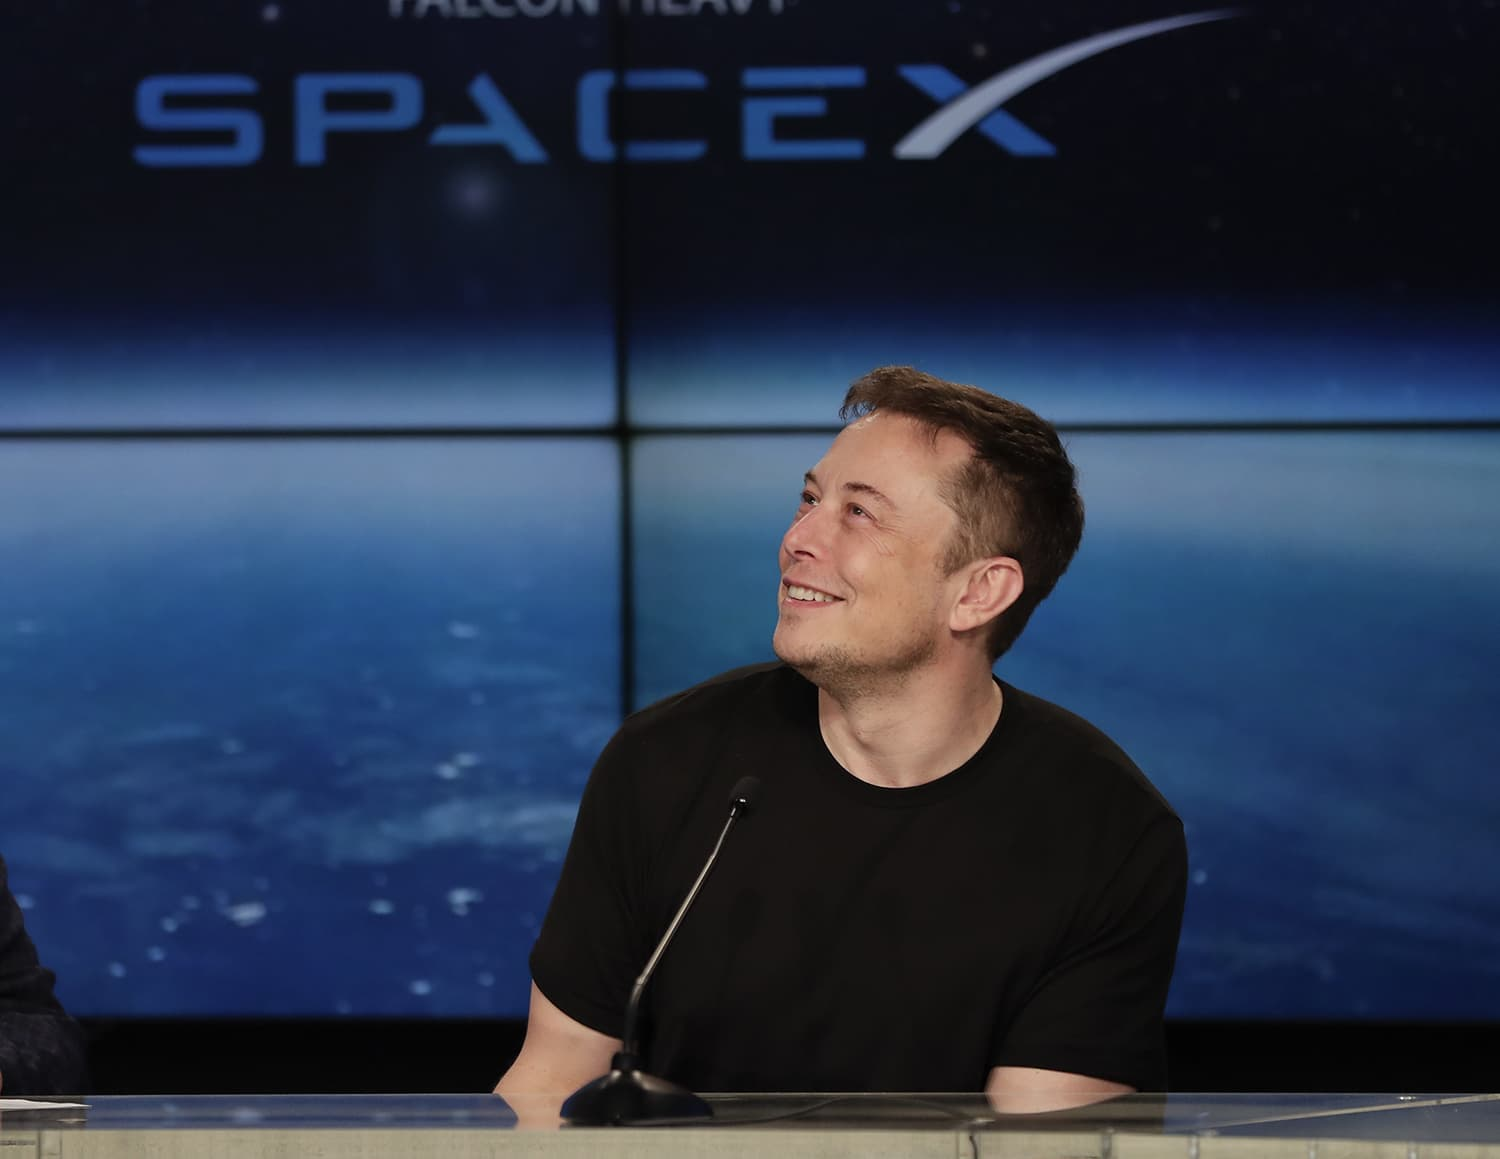 Elon Musk, founder, CEO, and lead designer of SpaceX. —AP